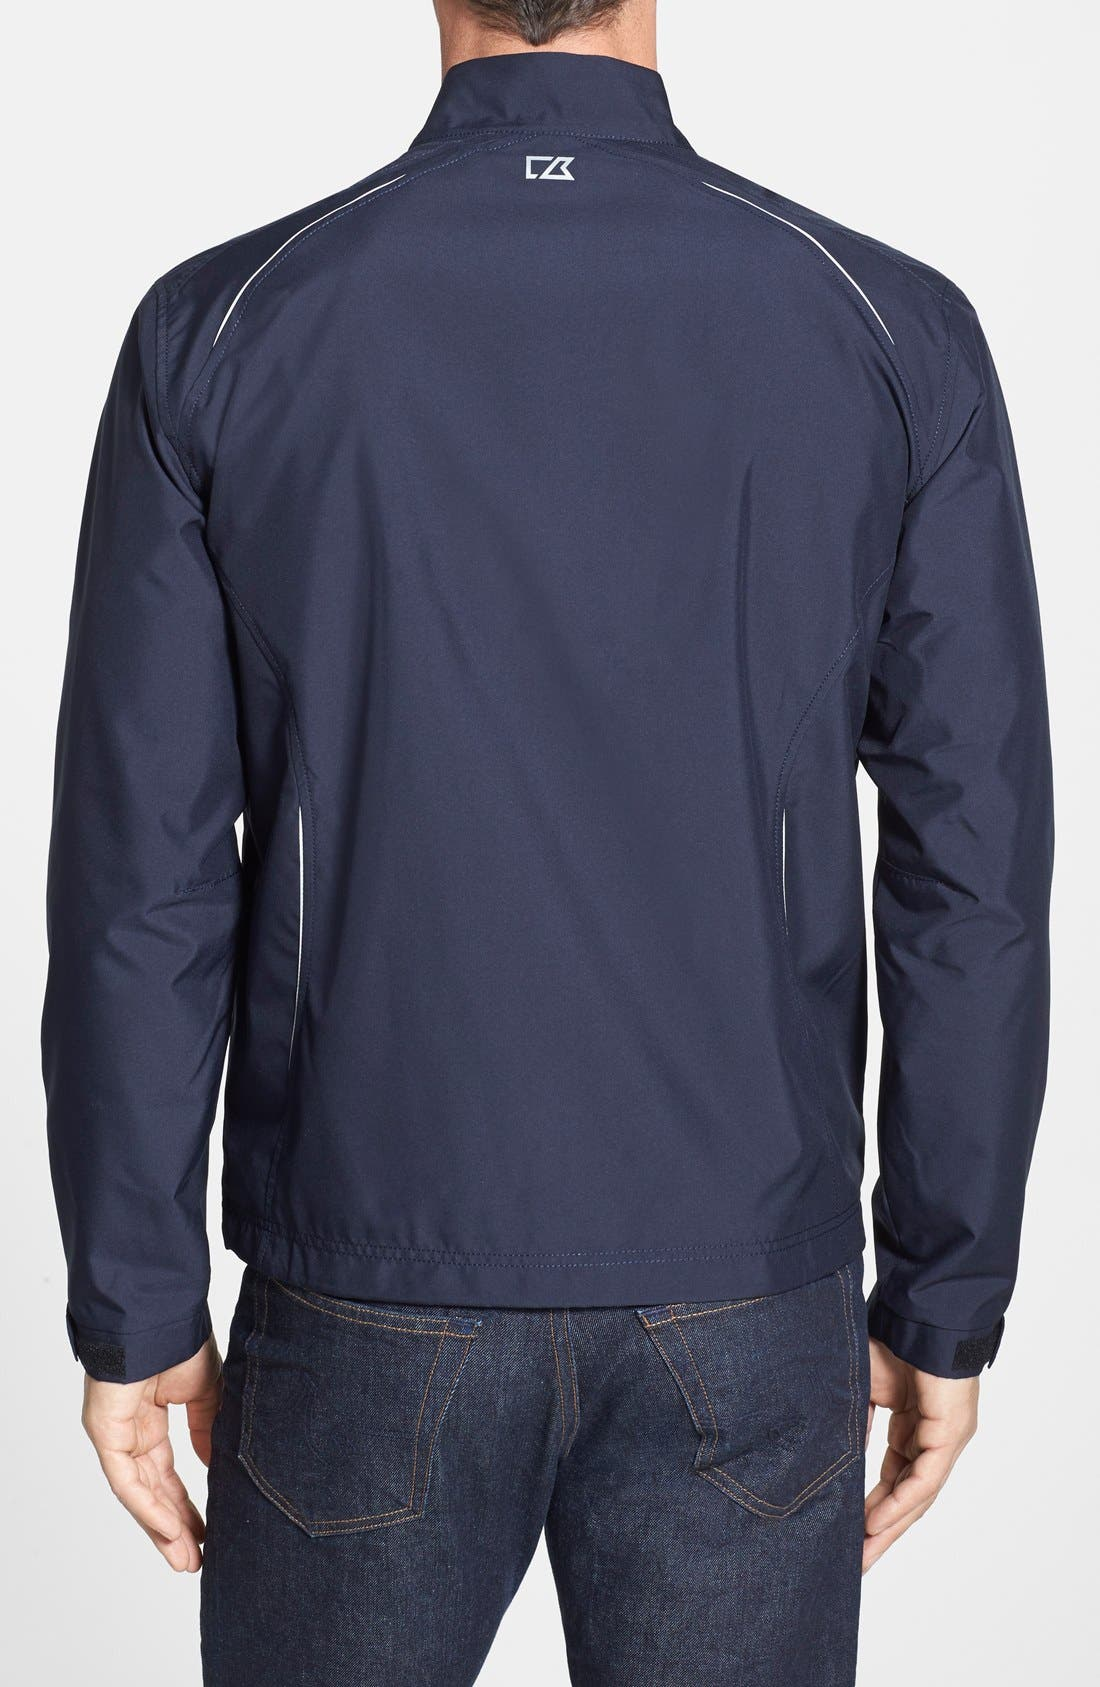 Tennessee Titans - Beacon WeatherTec Wind & Water Resistant Jacket,                             Alternate thumbnail 2, color,                             Navy Blue